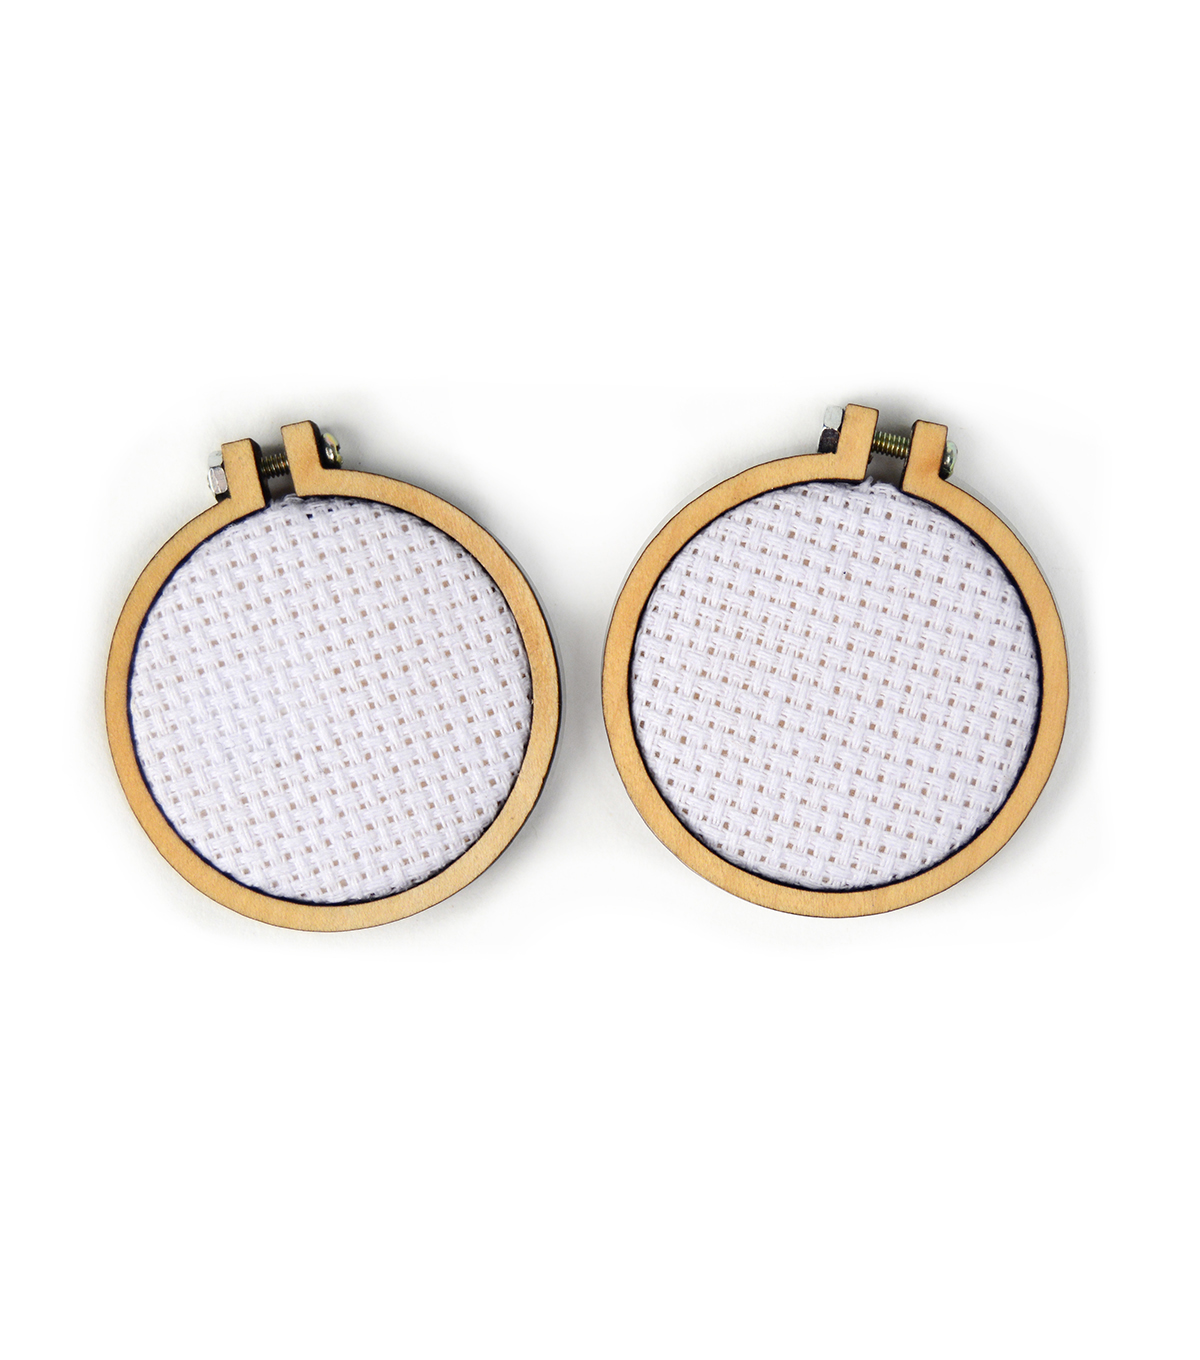 Cross Stitch Style Mini Embroidery Hoops